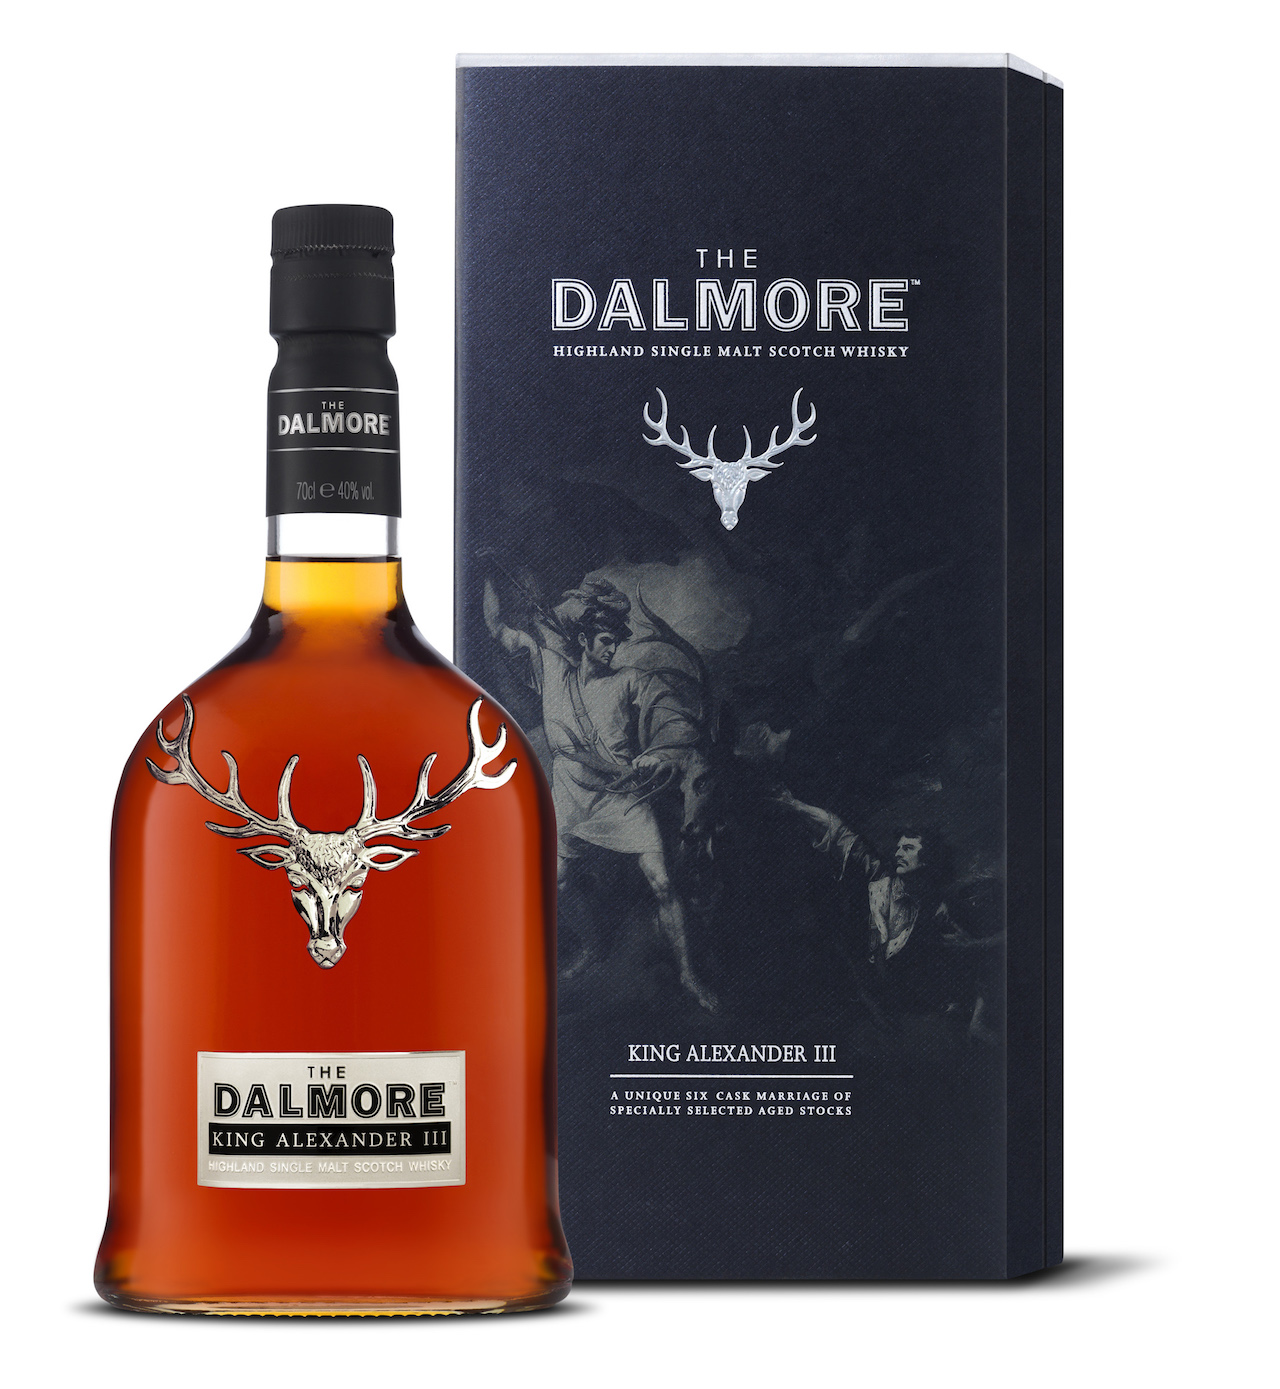 The Dalmore whisky packaging features a solid silver stag to represent the distillery's heritage and links with the Mackenzie clan